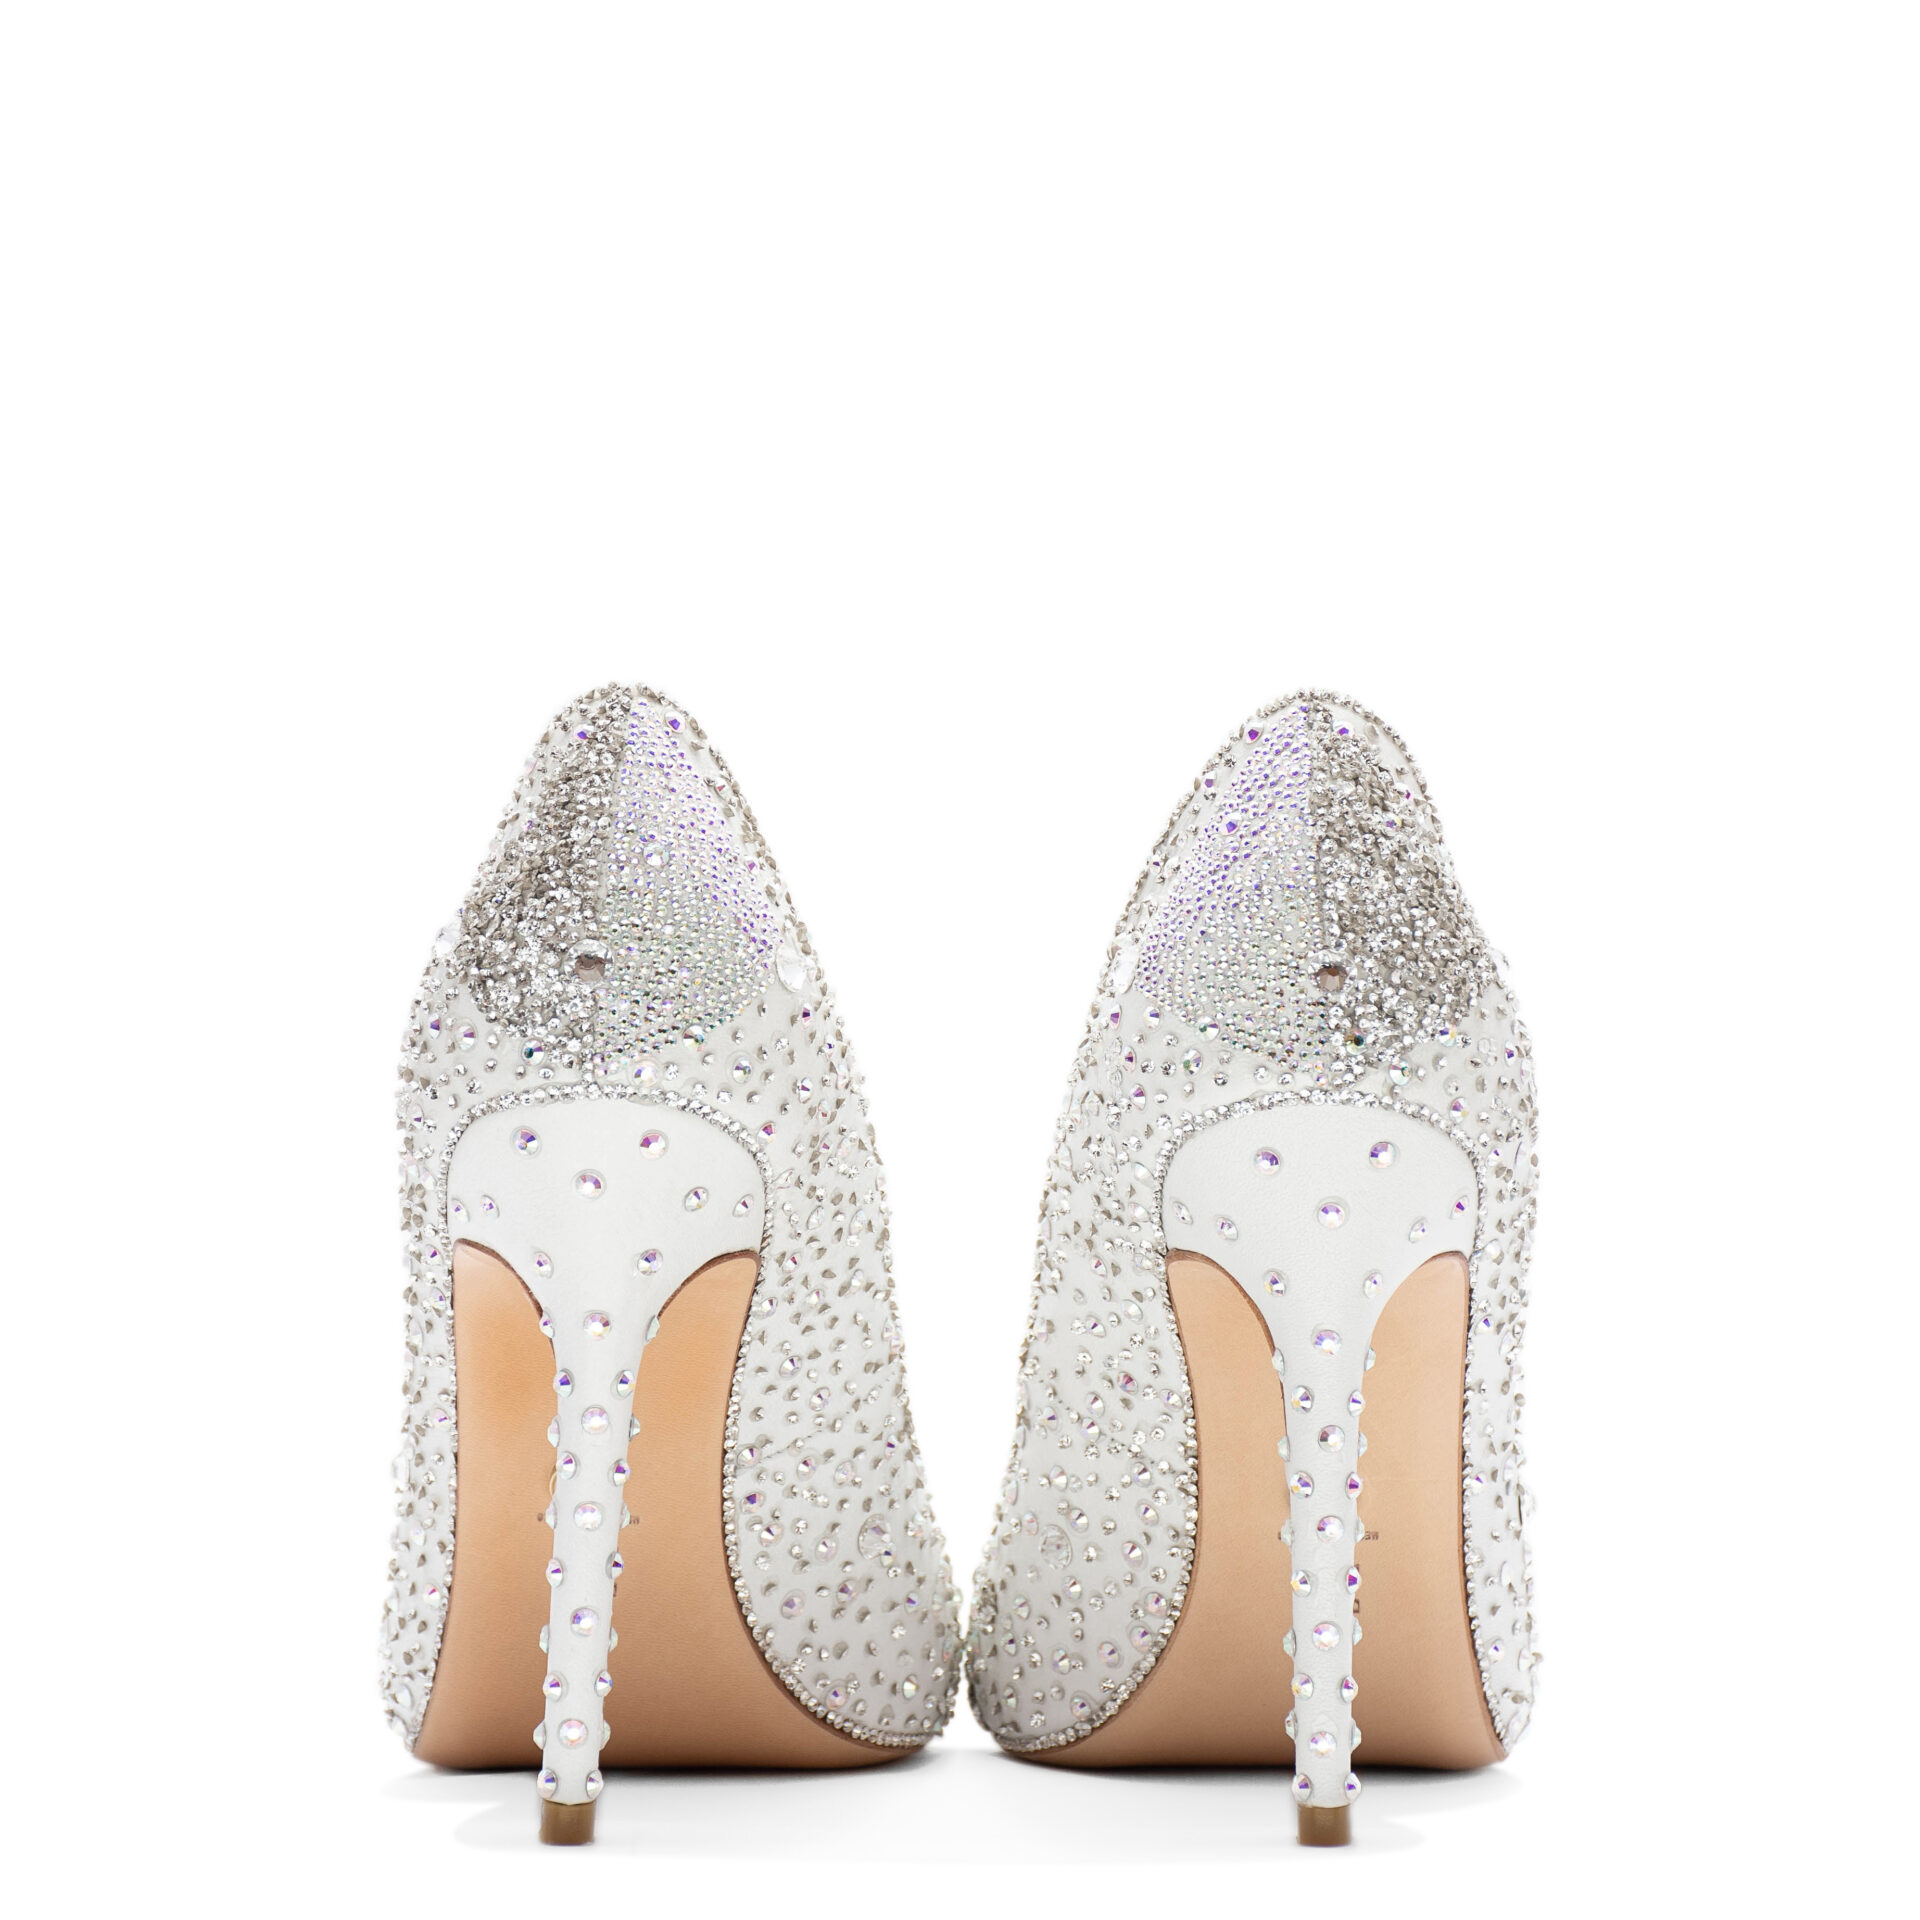 high heels with crystals